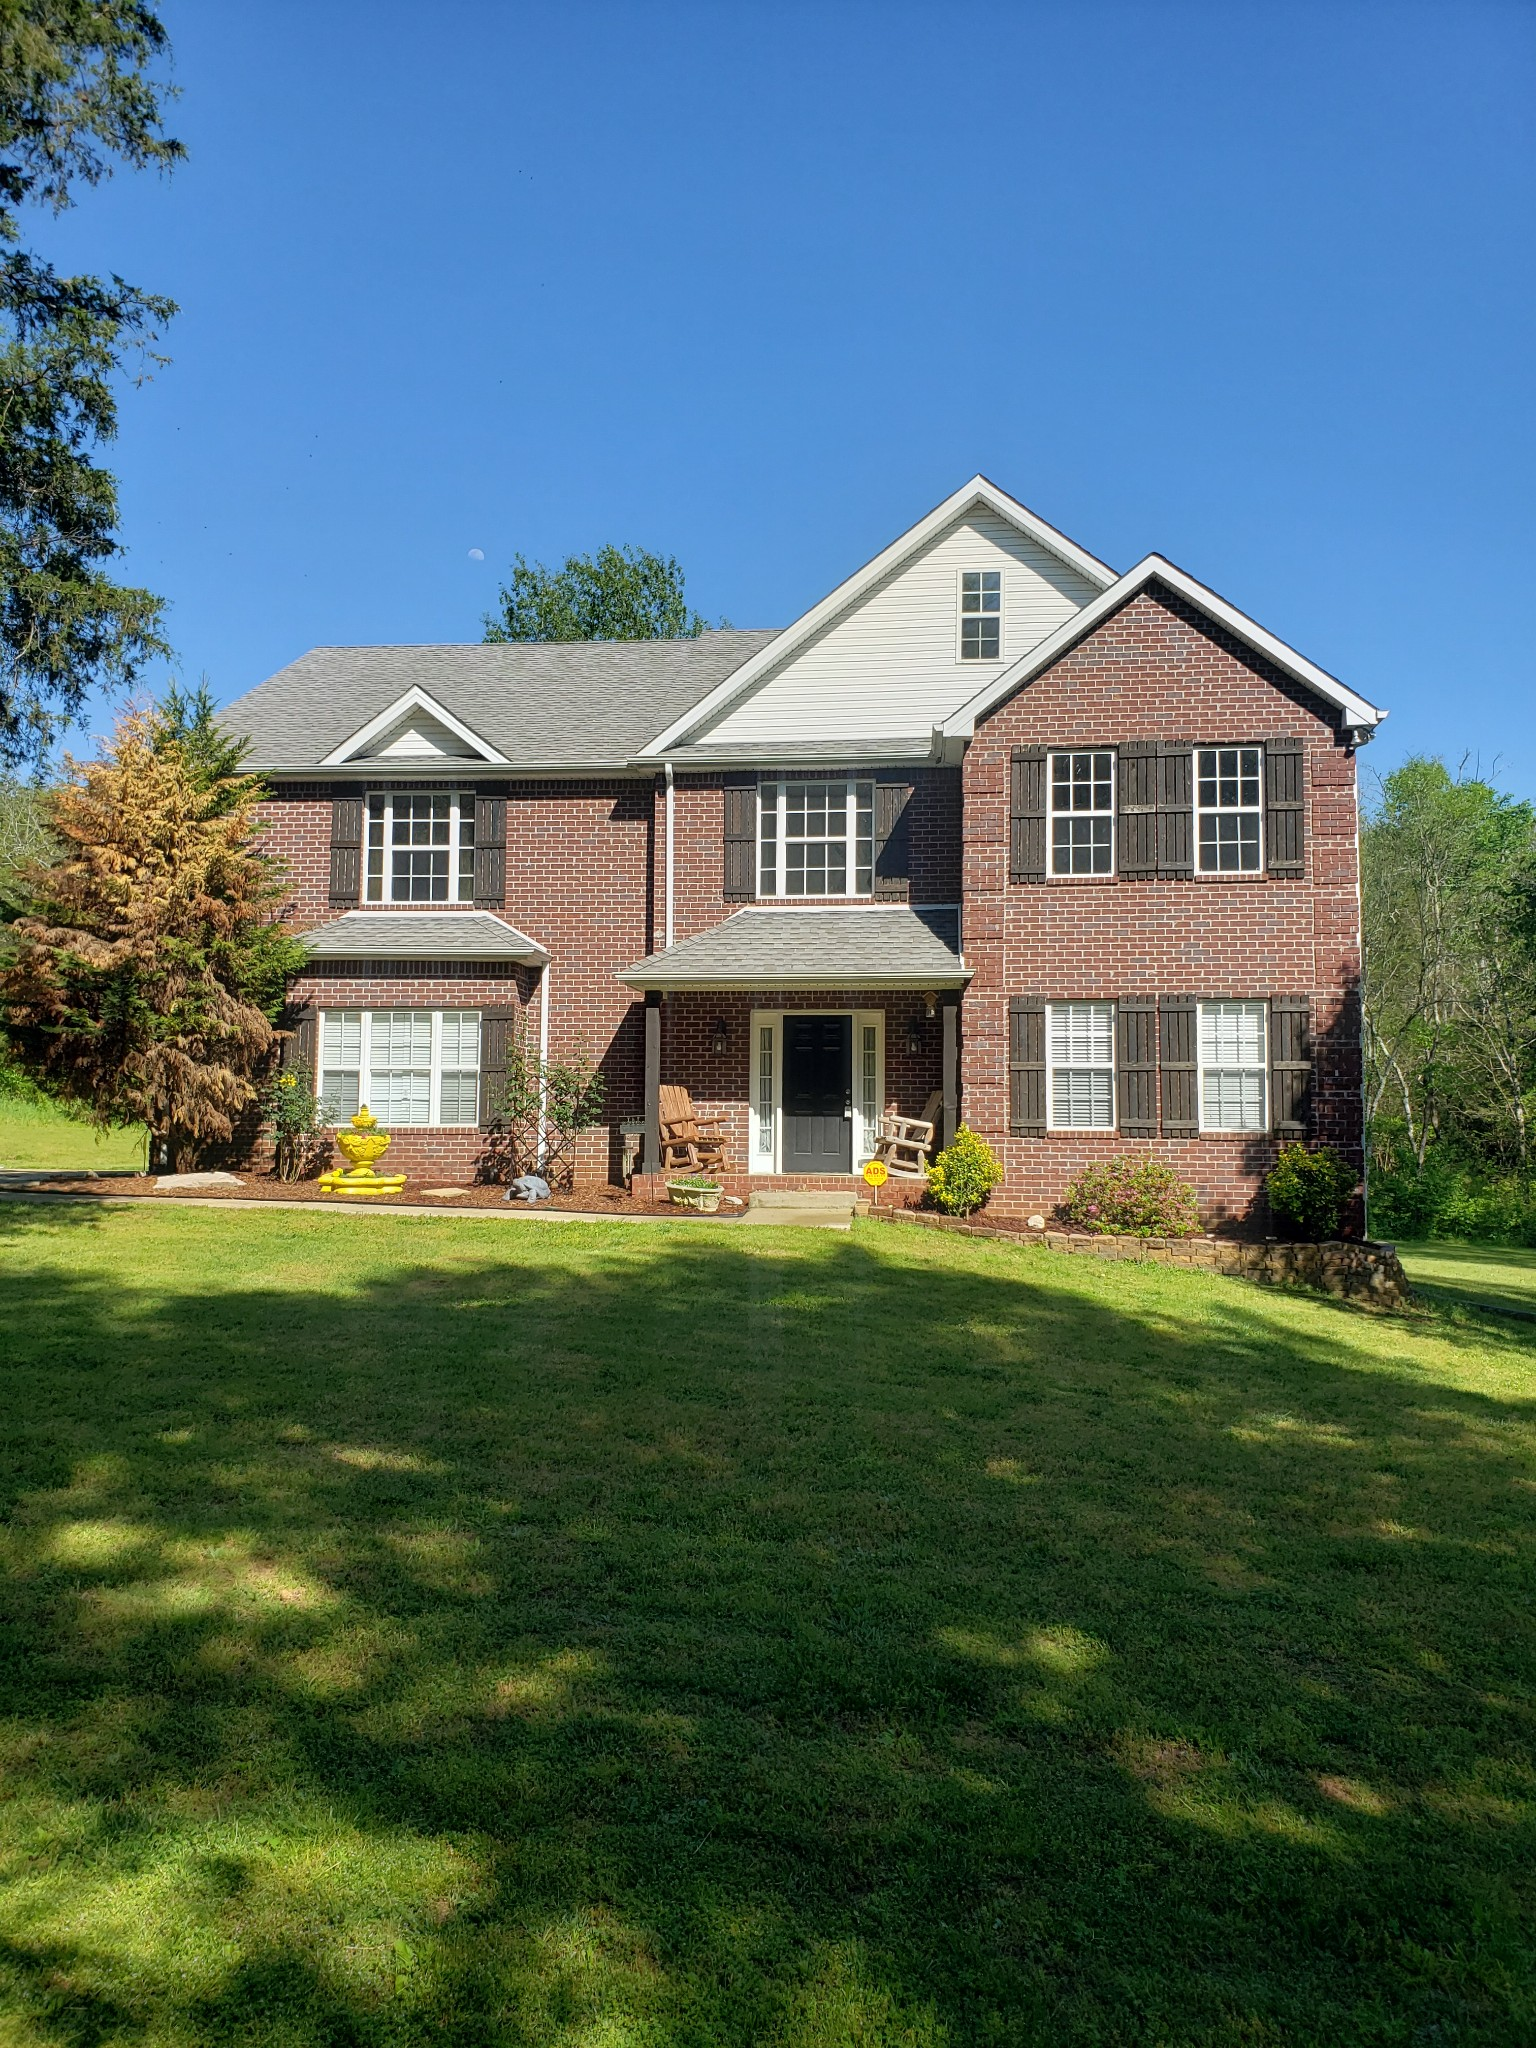 2994 Crafton Rd, Spring Hill, Tennessee